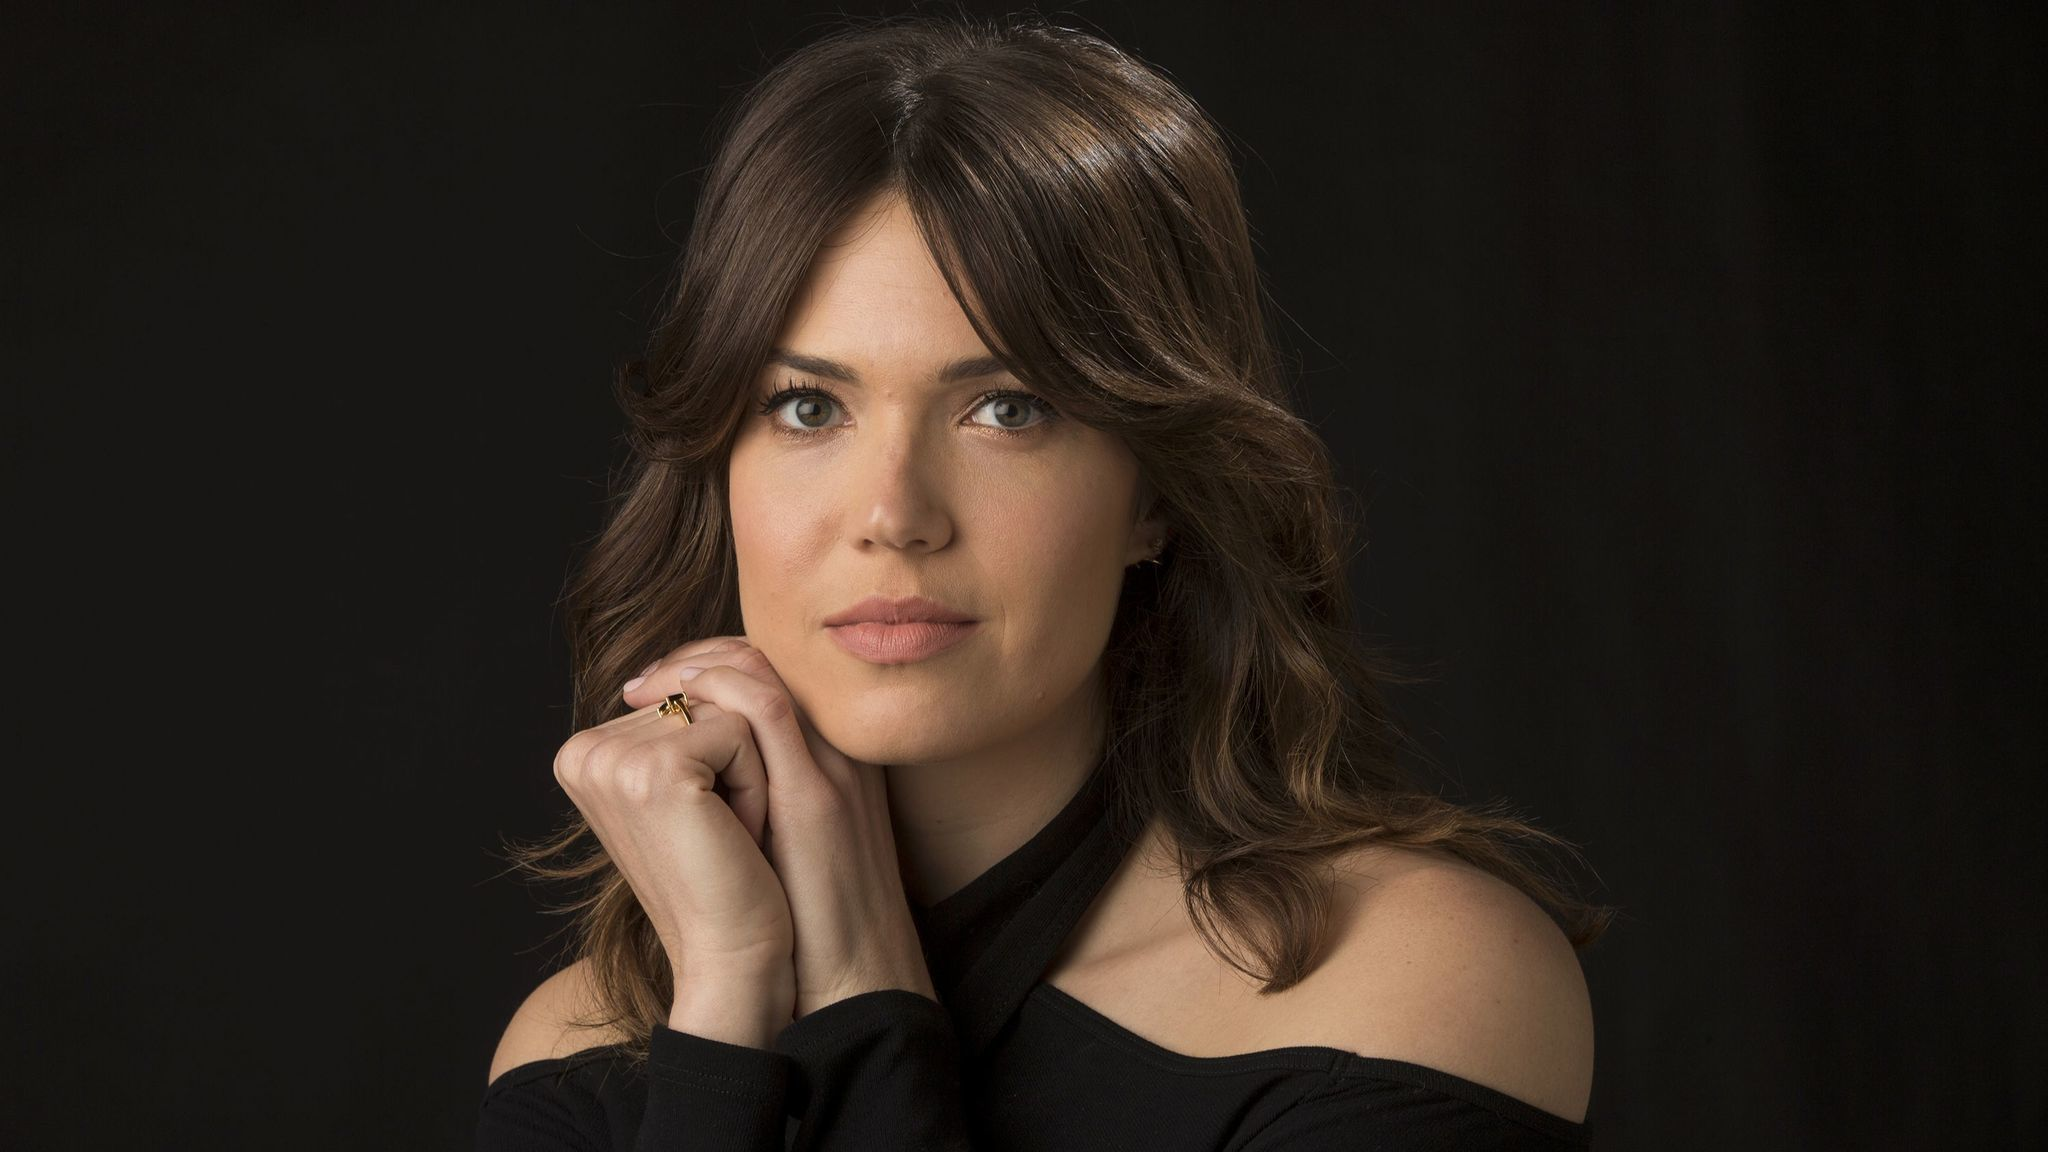 Mandy Moore se une a adaptación de The Darkest Minds